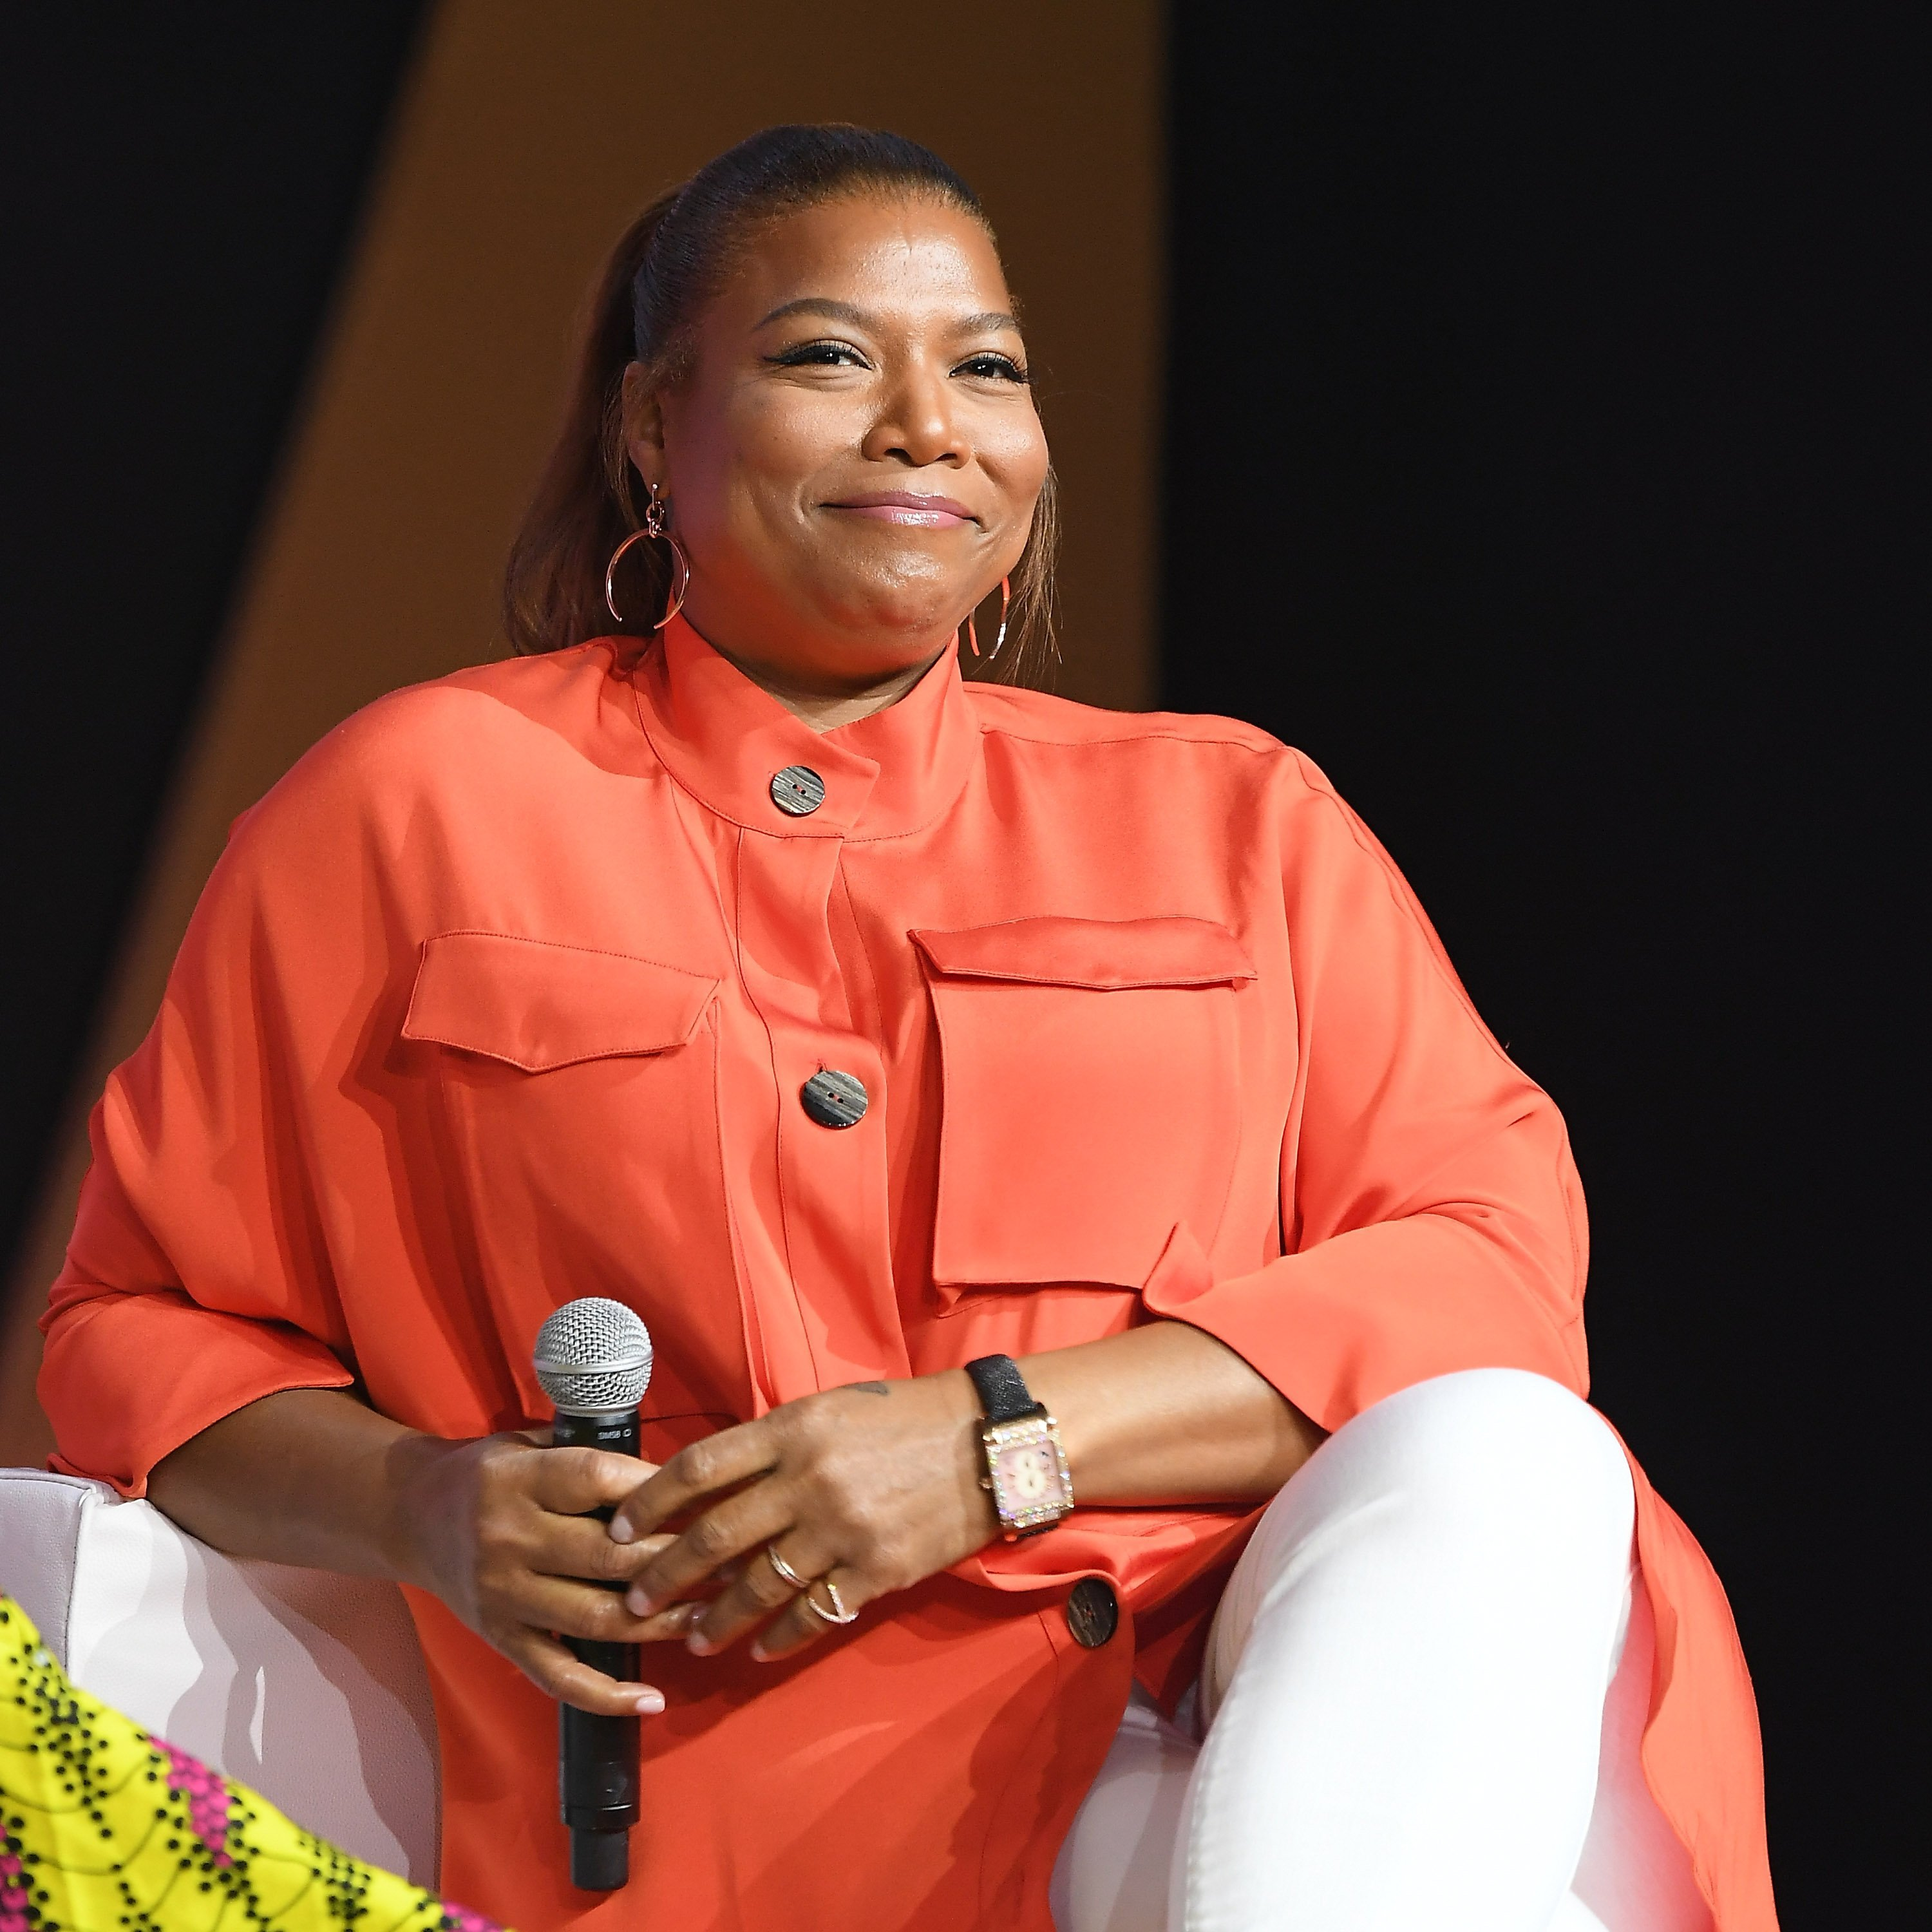 Queen Latifah during the 2018 Essence Festival in New Orleans, Louisiana on July 6, 2018 | Photo: Getty Images